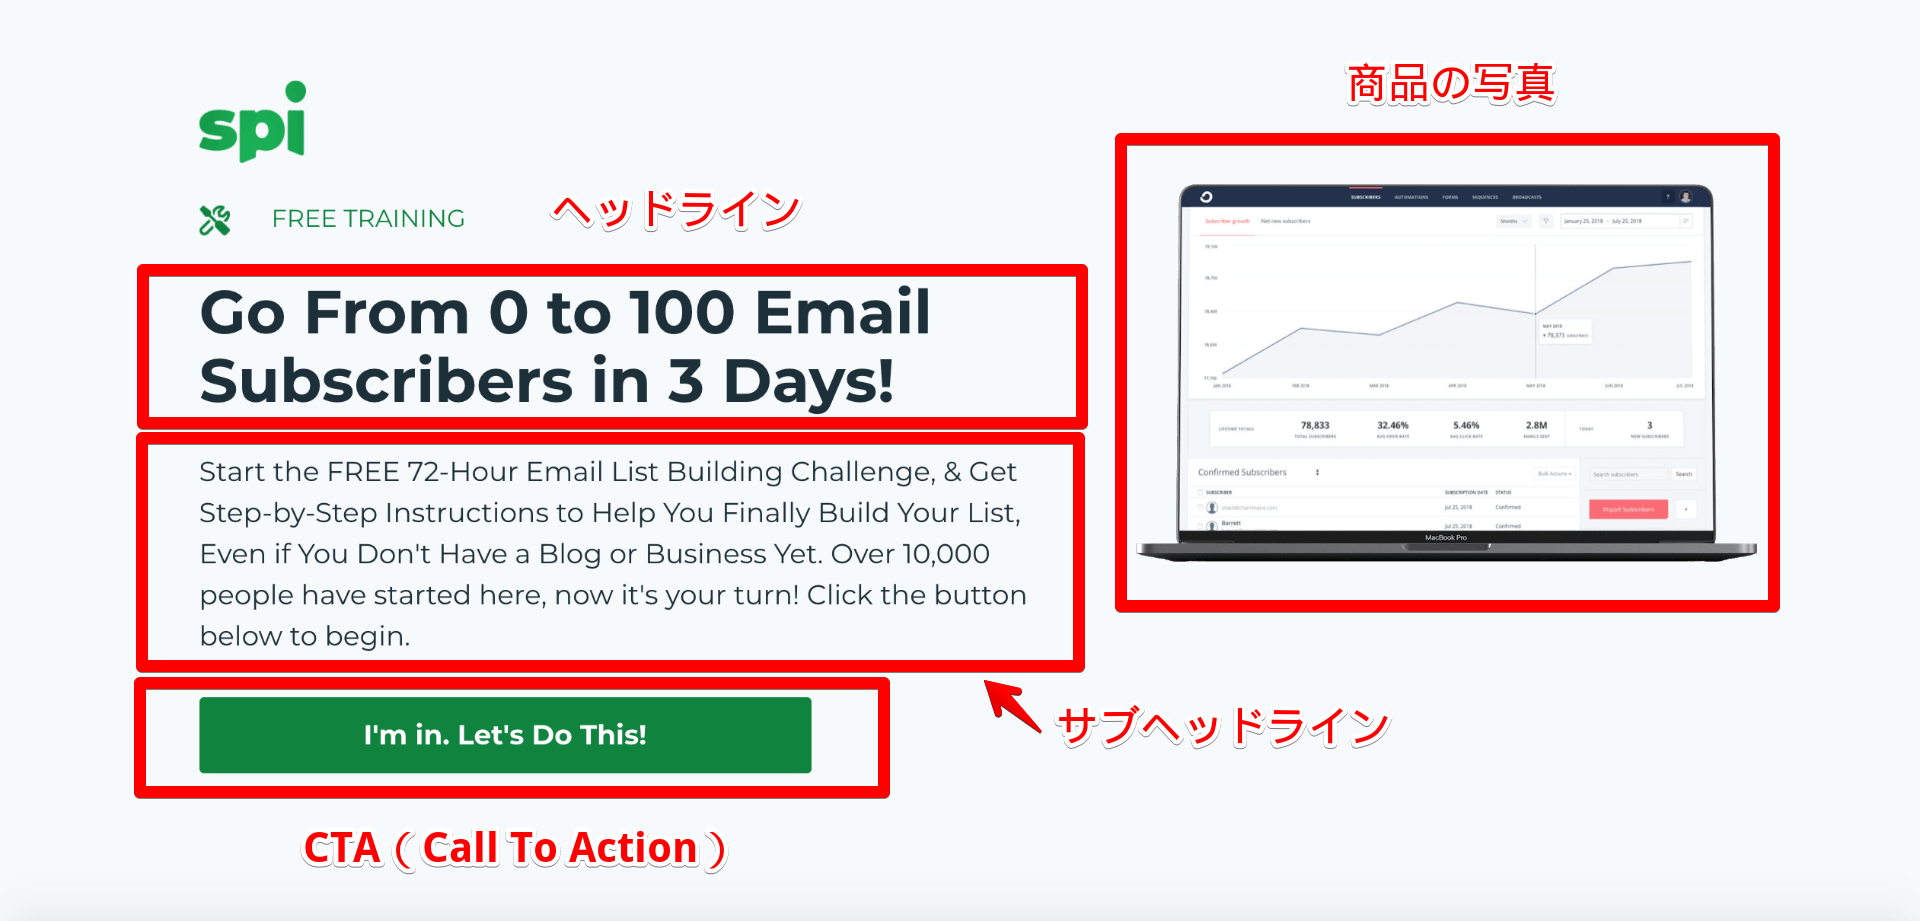 0 to 100 Email Challenge 1